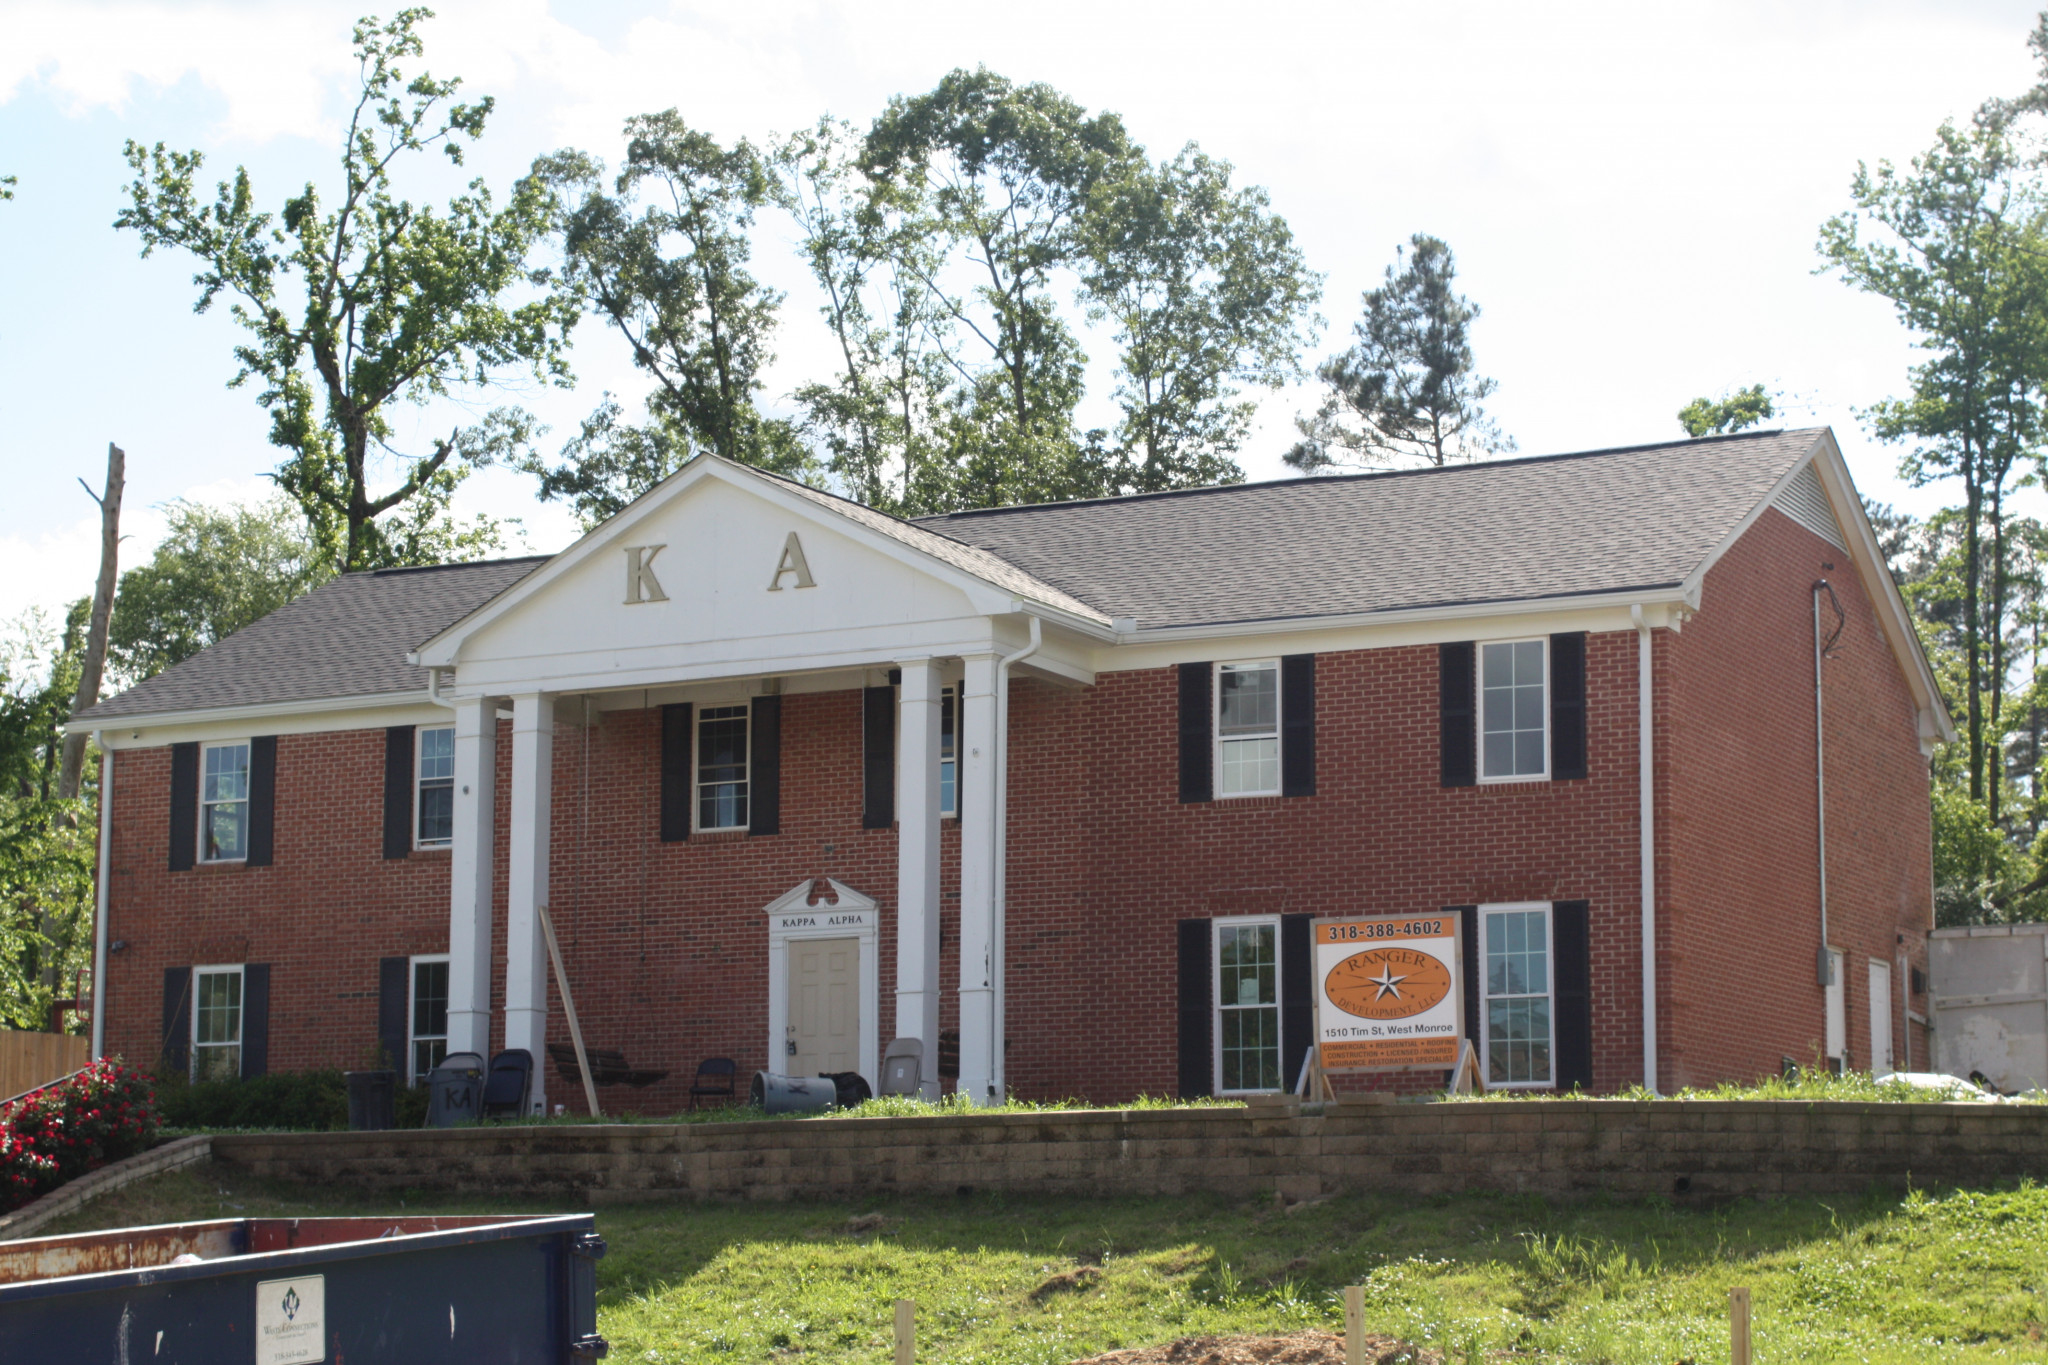 The Kappa Alpha house as it stands now.